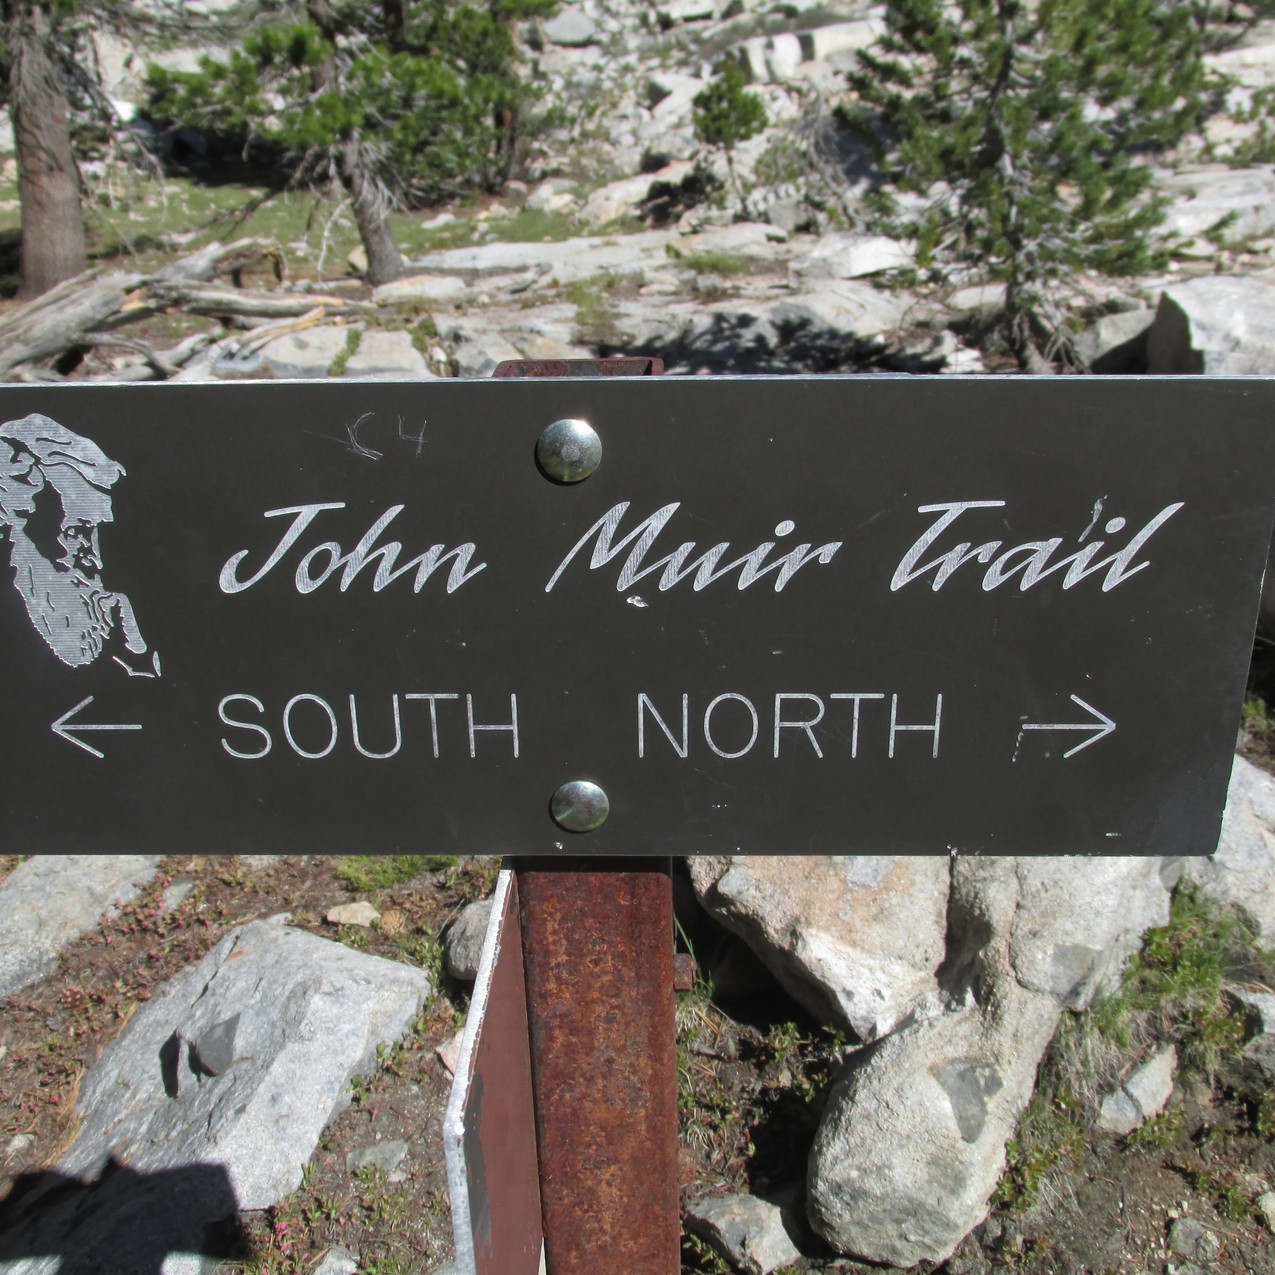 The John Muir Trail and PCT mostly share the same trail.  I hiked every step of the JMT even when that meant deviating from the PCT.